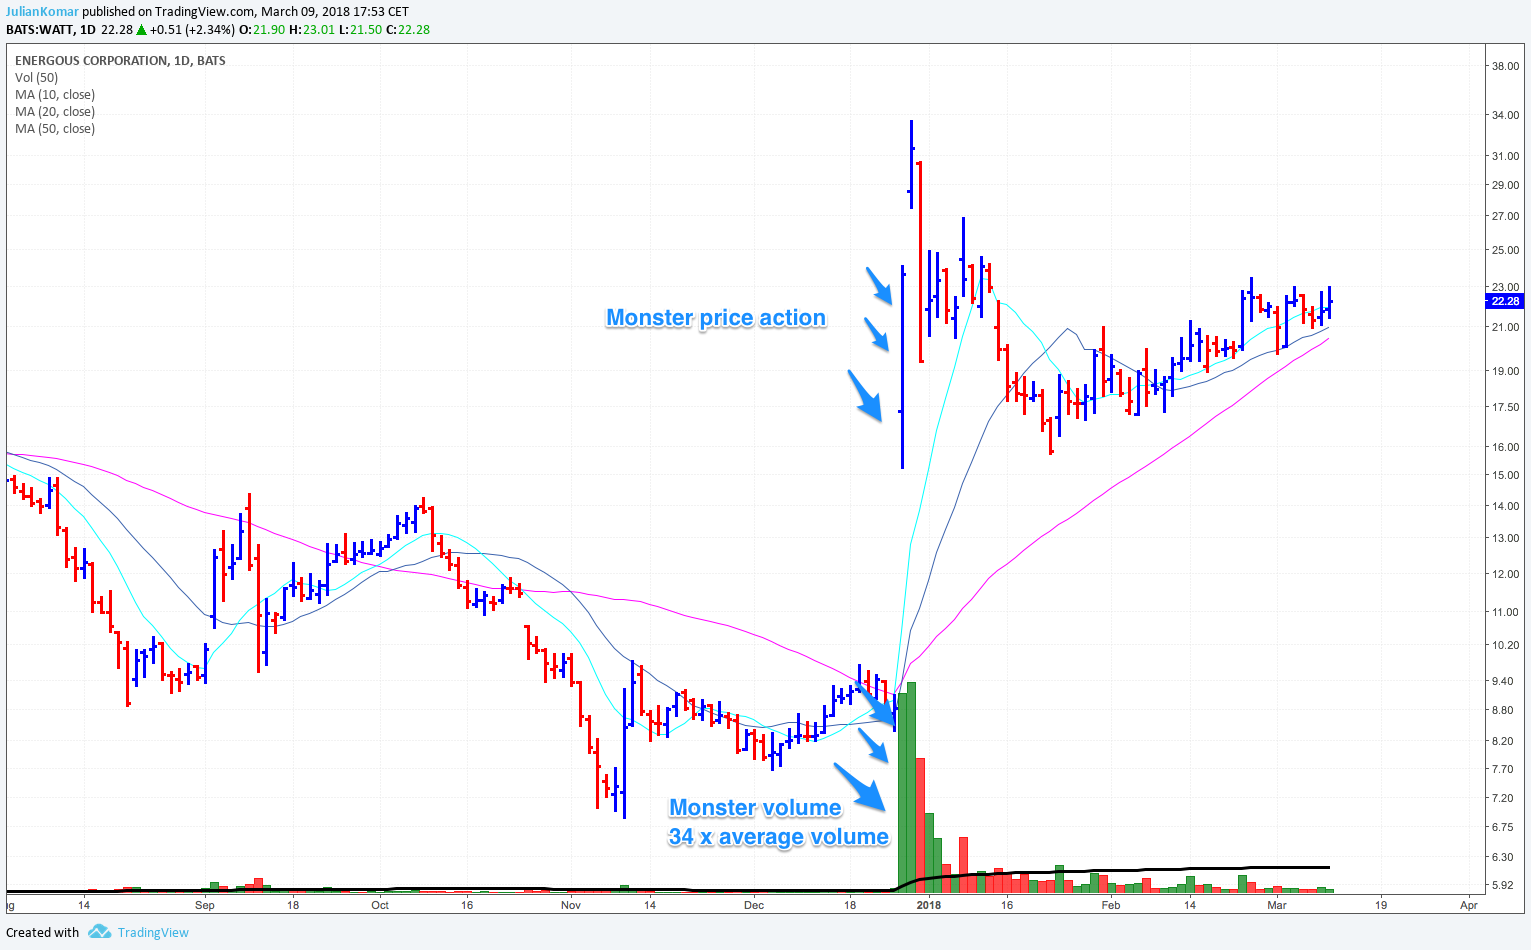 Monster price and volume action in a stock.